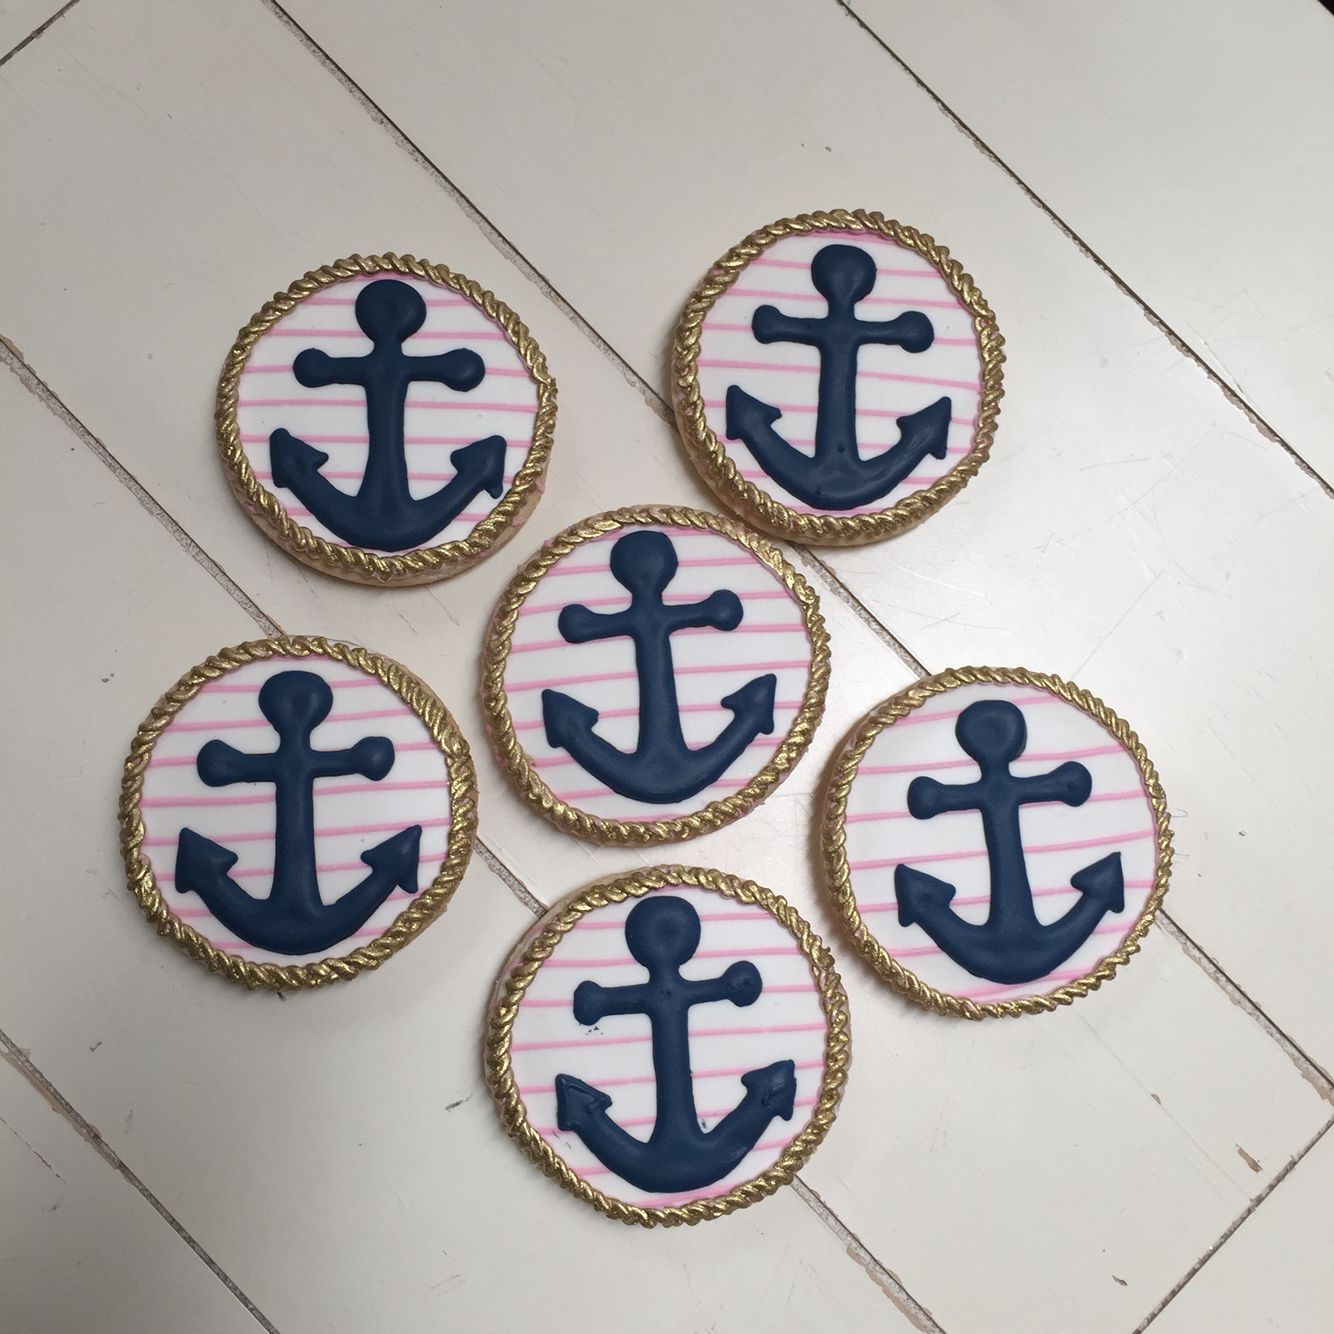 Anchors Away Bridal Shower Decorated Cookies Getting Married On A - Getting married on a cruise ship